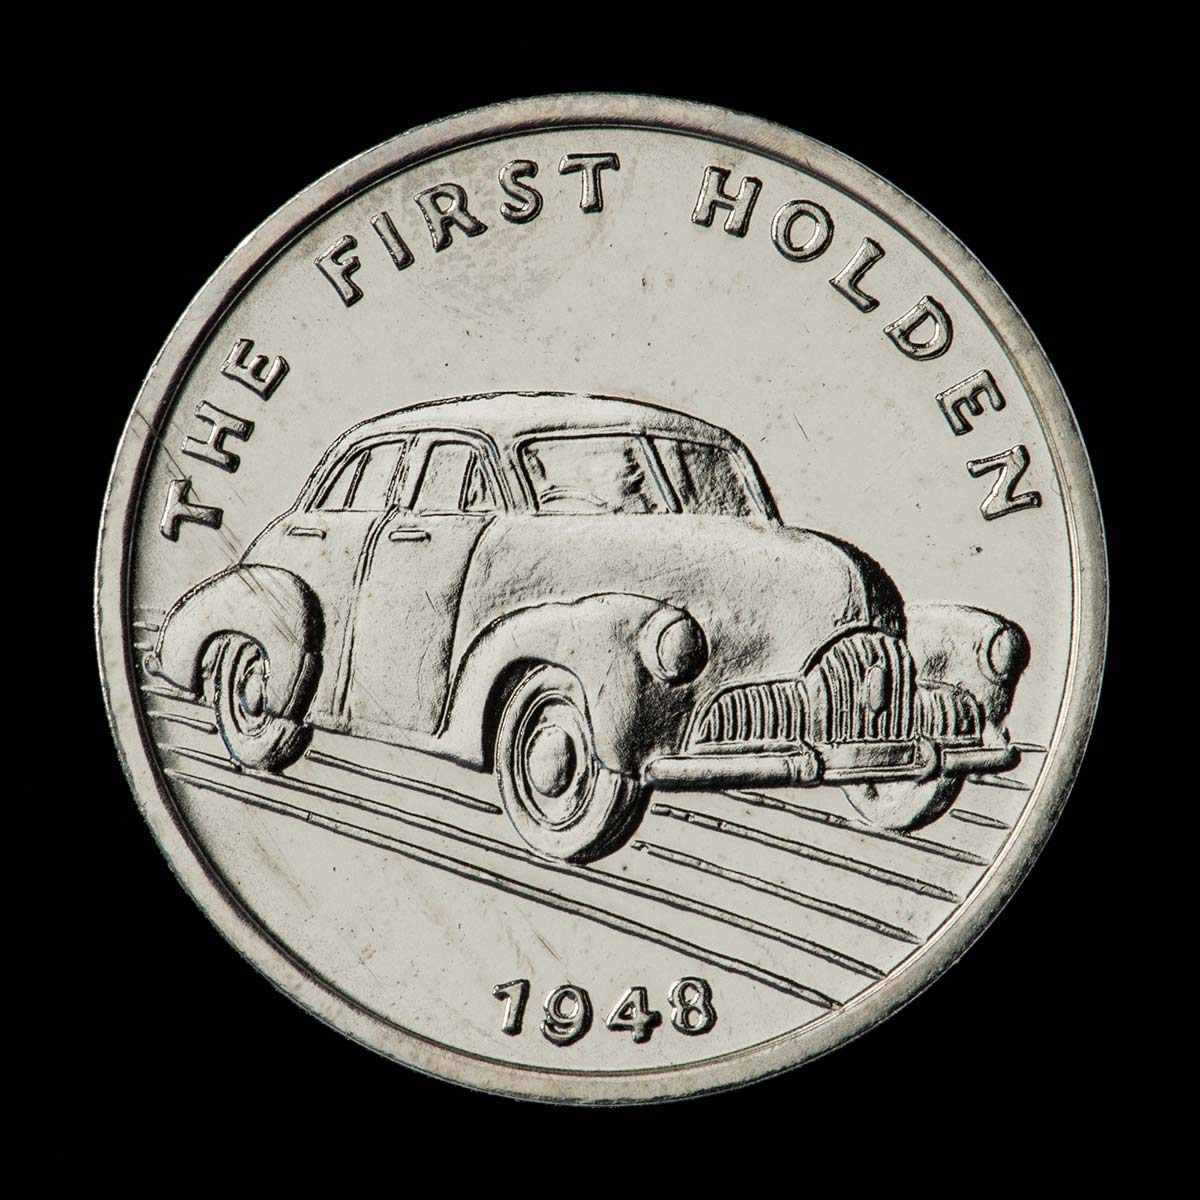 A silver coloured metal commemorative medal depicting the first Holden car. The front of the medal contains a depiction of a Holden car with the text